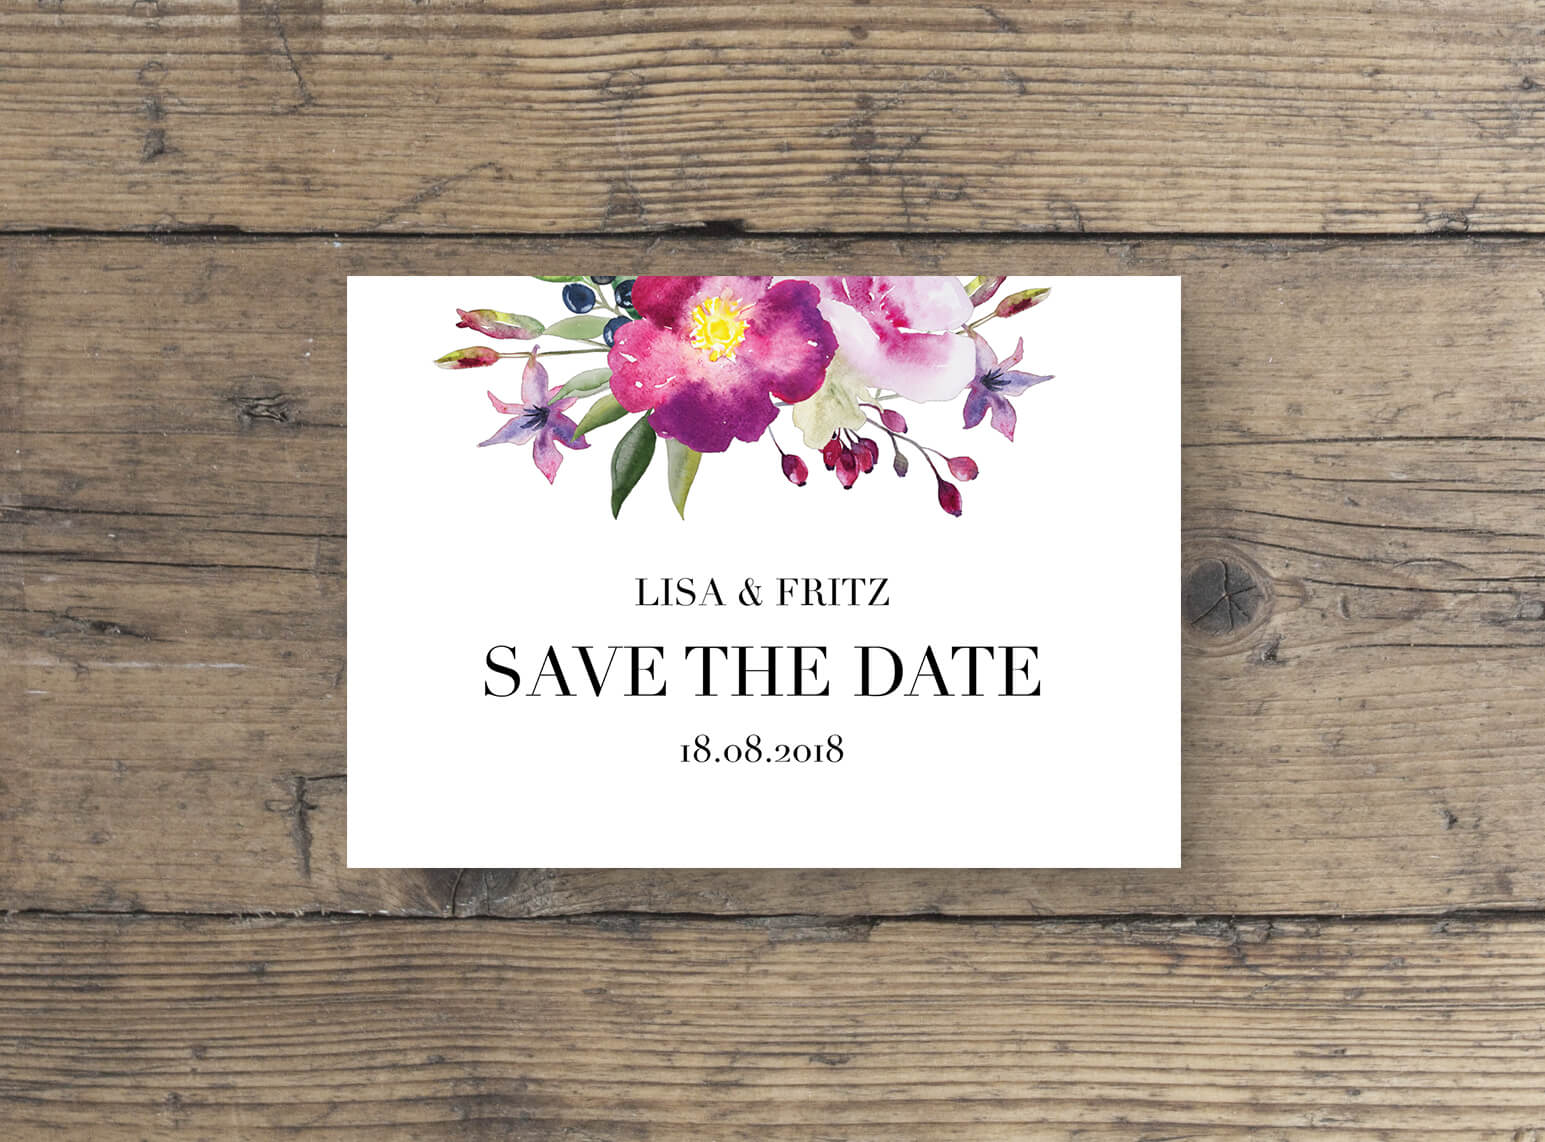 Aquarell Rosen Save the Date Postkarte Elegante Schrift